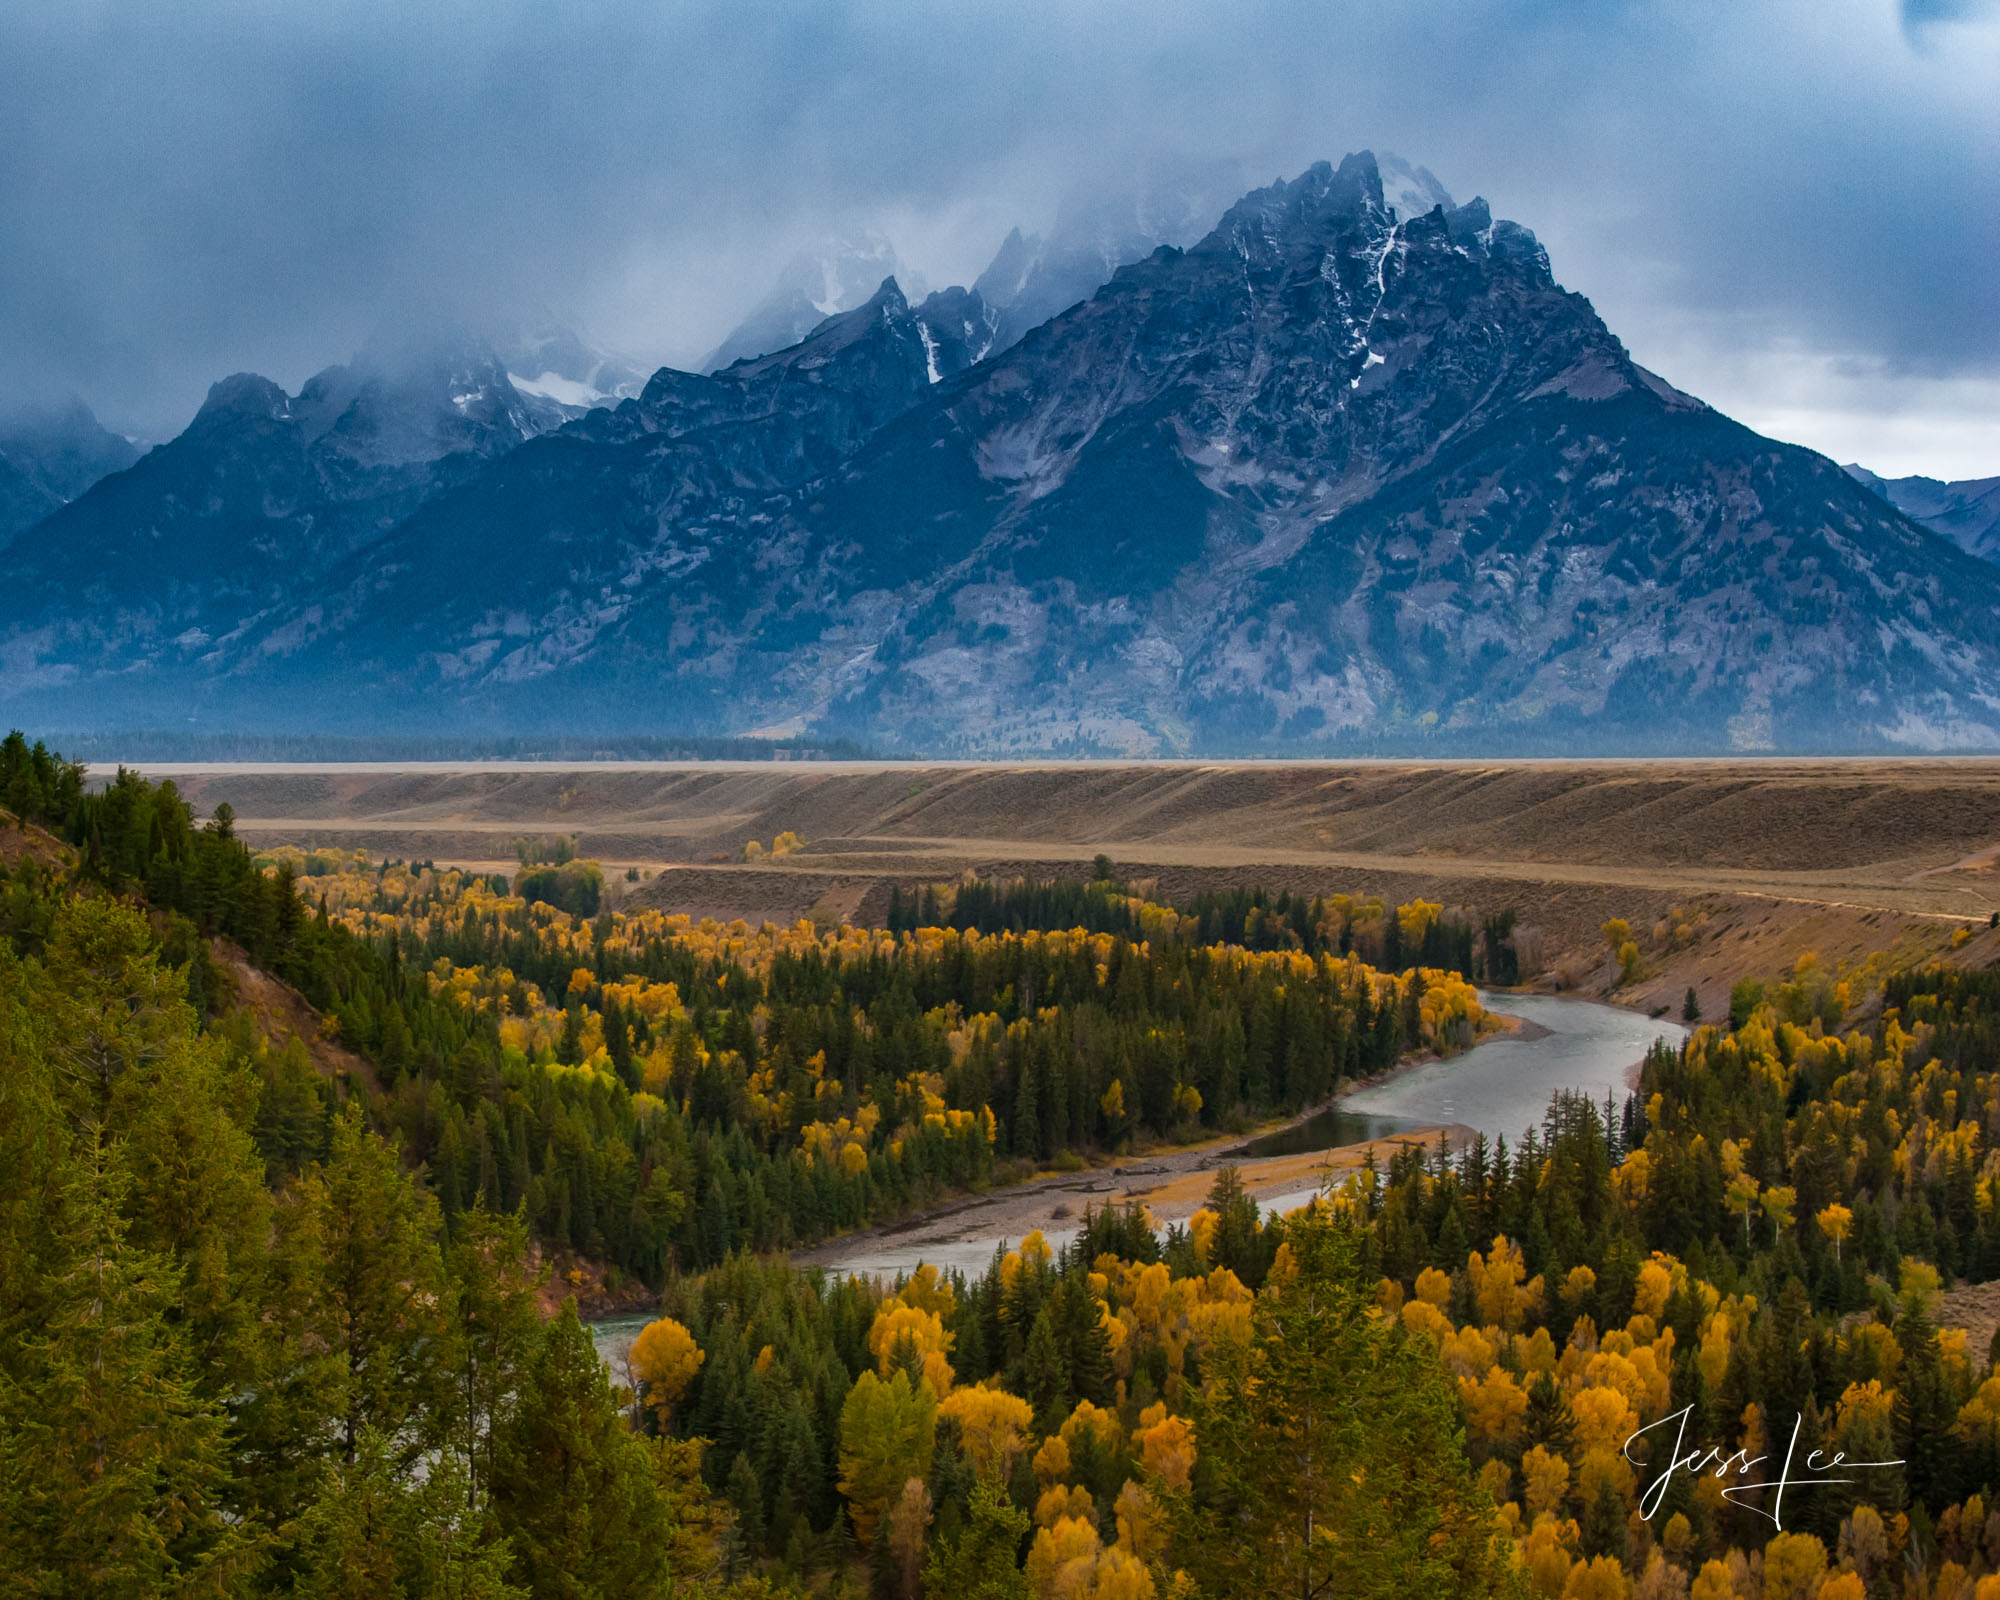 Limited Edition Print of 250 Photo of Grand Teton National Park from the Snake River Overlook during a autumn storm. A autumn...